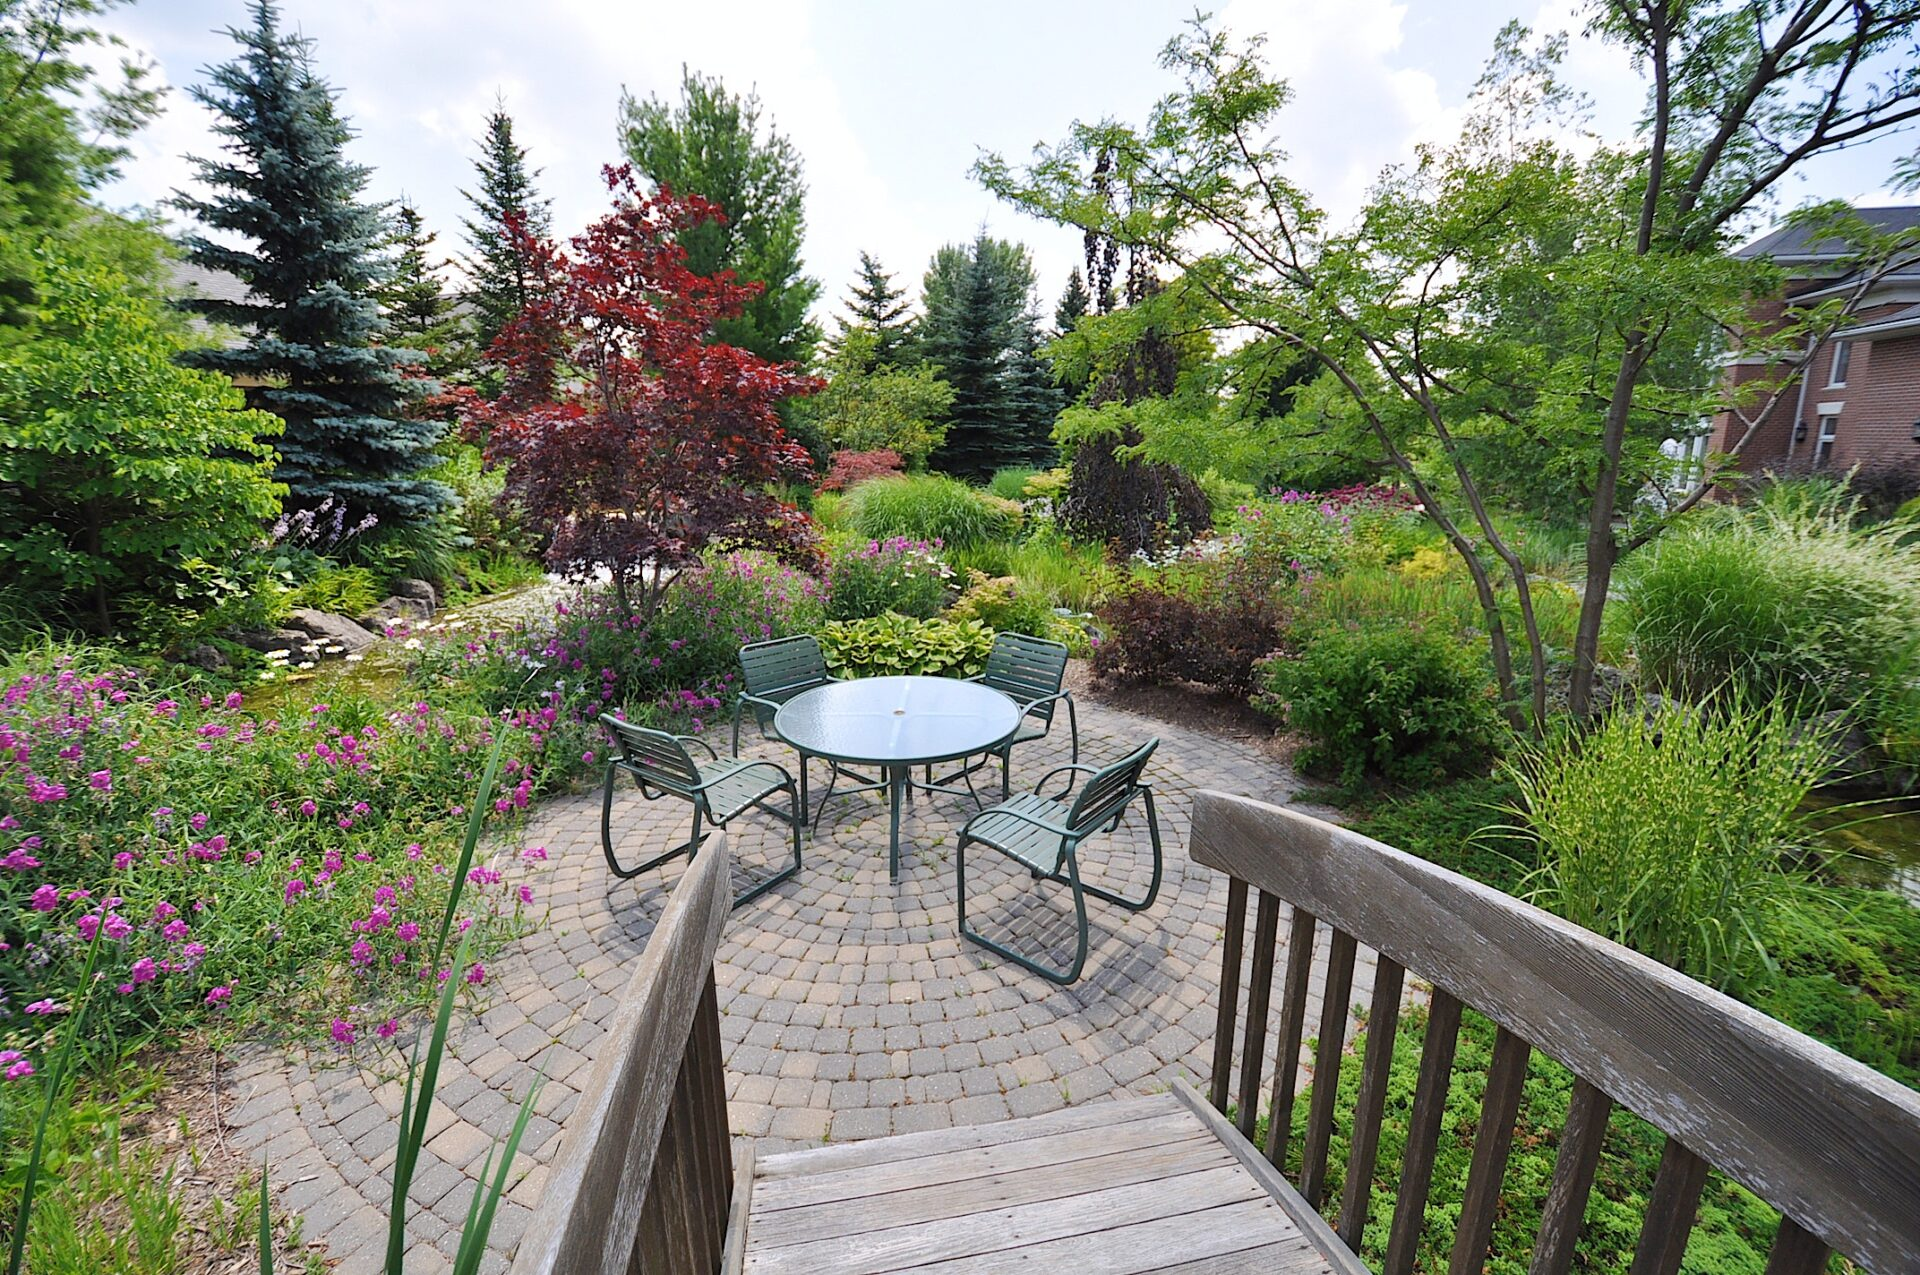 Picture yourself walking out of your condominium to the beautiful Zen Garden.  Located just outside of the Village Centre in The Village By The Arboretum (Guelph, Ontario).